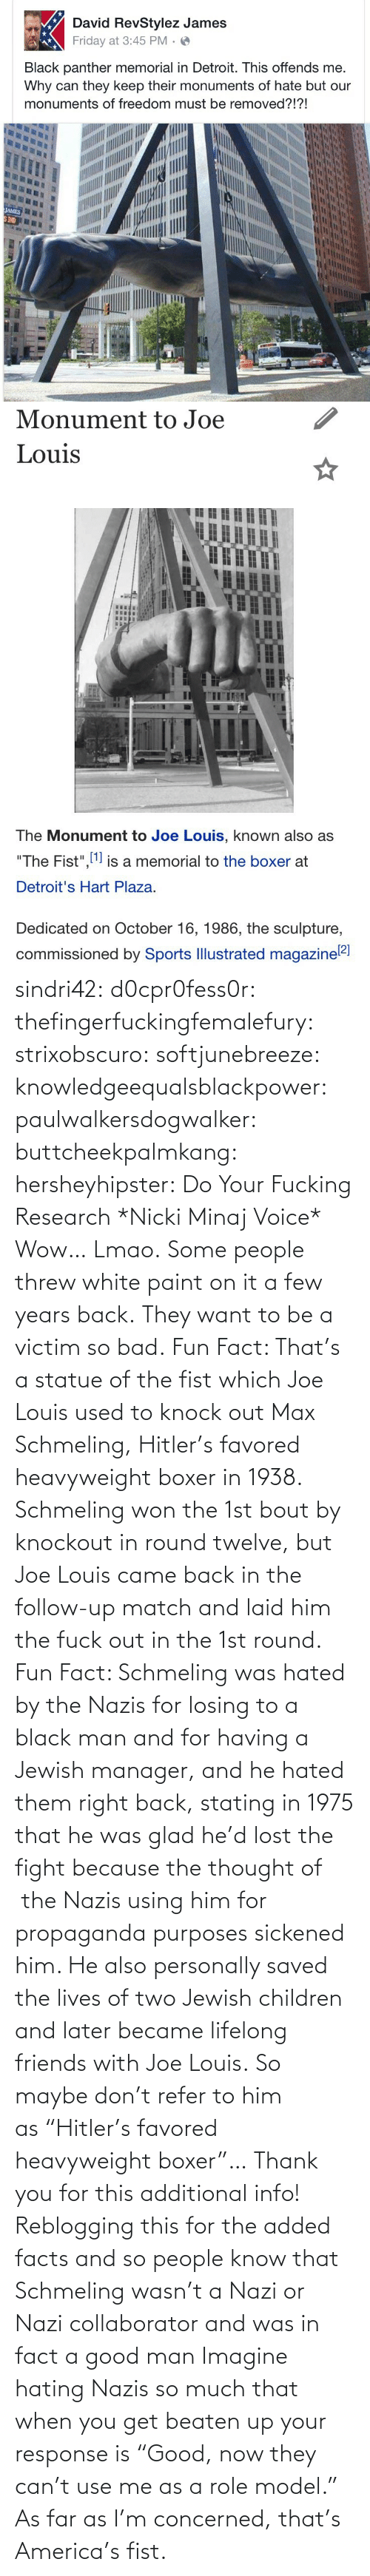 "using: sindri42:  d0cpr0fess0r:  thefingerfuckingfemalefury:  strixobscuro:  softjunebreeze:  knowledgeequalsblackpower:  paulwalkersdogwalker:   buttcheekpalmkang:   hersheyhipster:  Do Your Fucking Research *Nicki Minaj Voice*    Wow… Lmao.   Some people threw white paint on it a few years back.   They want to be a victim so bad.  Fun Fact: That's a statue of the fist which Joe Louis used to knock out Max Schmeling, Hitler's favored heavyweight boxer in 1938. Schmeling won the 1st bout by knockout in round twelve, but Joe Louis came back in the follow-up match and laid him the fuck out in the 1st round.  Fun Fact: Schmeling was hated by the Nazis for losing to a black man and for having a Jewish manager, and he hated them right back, stating in 1975 that he was glad he'd lost the fight because the thought of  the Nazis using him for propaganda purposes sickened him. He also personally saved the lives of two Jewish children and later became lifelong friends with Joe Louis. So maybe don't refer to him as ""Hitler's favored heavyweight boxer""…  Thank you for this additional info! Reblogging this for the added facts and so people know that Schmeling wasn't a Nazi or Nazi collaborator and was in fact a good man   Imagine hating Nazis so much that when you get beaten up your response is ""Good, now they can't use me as a role model.""  As far as I'm concerned, that's America's fist."